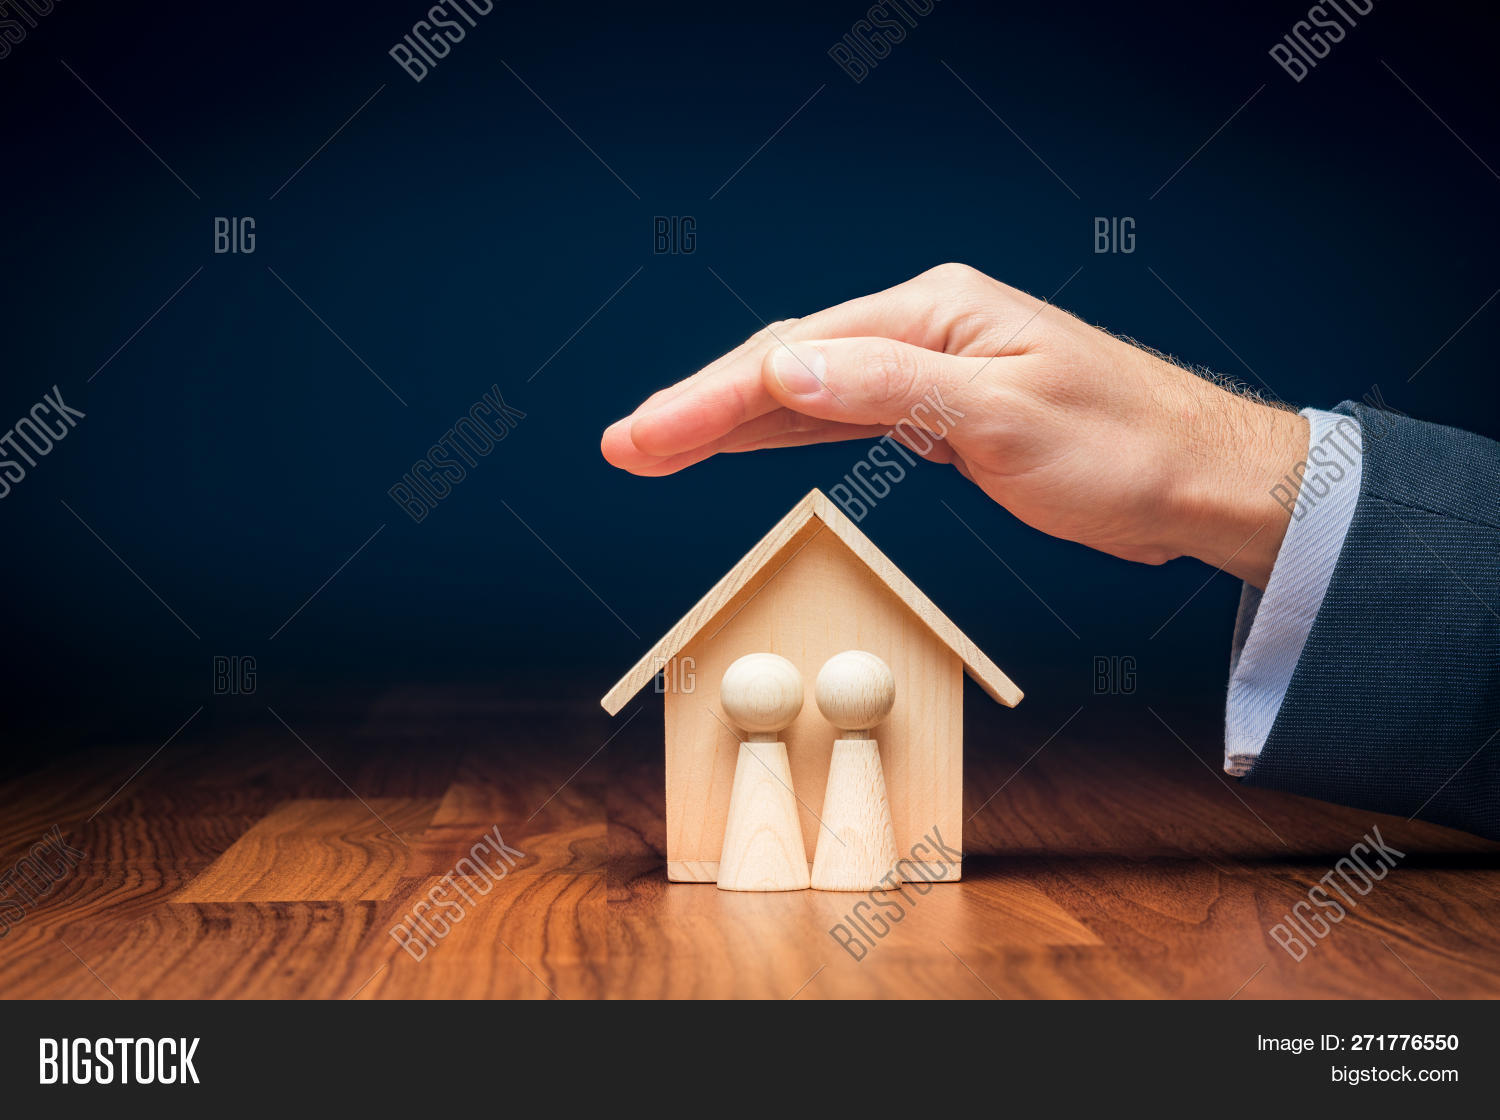 agent,broker,businessman,concept,family,figurine,group,hand,home,house,insurance,insured,insurer,life,model,people,policy,property,protect,protective,services,support,supporting,wood